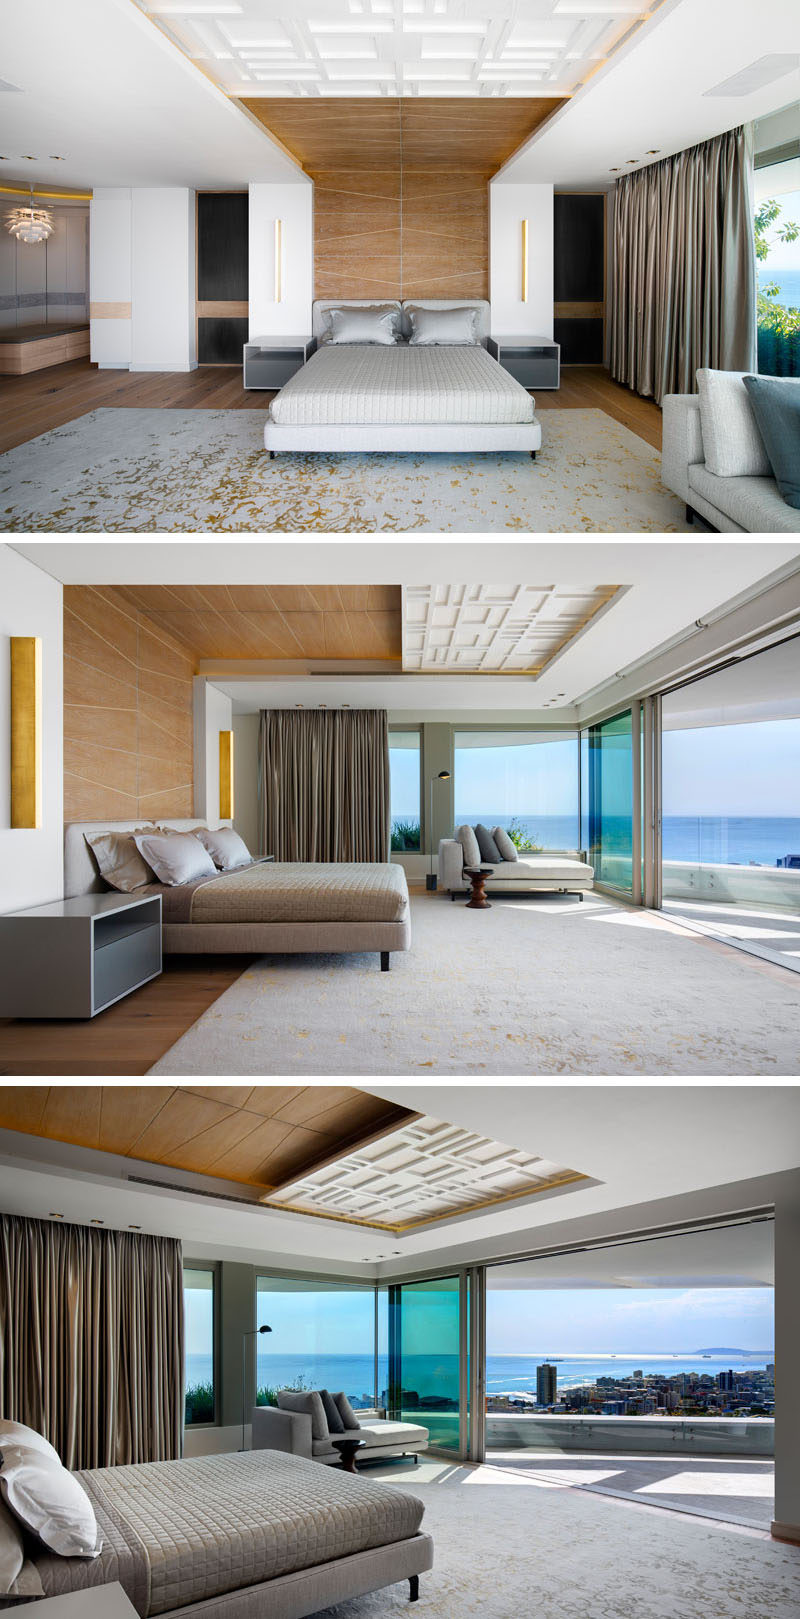 In this modern master bedroom, timber paneling wraps from behind the bed and up onto the ceiling, while the bedroom opens up to a private terrace with expansive views. #MasterBedroom #WoodAccent #InteriorDesign #ModernBedroom